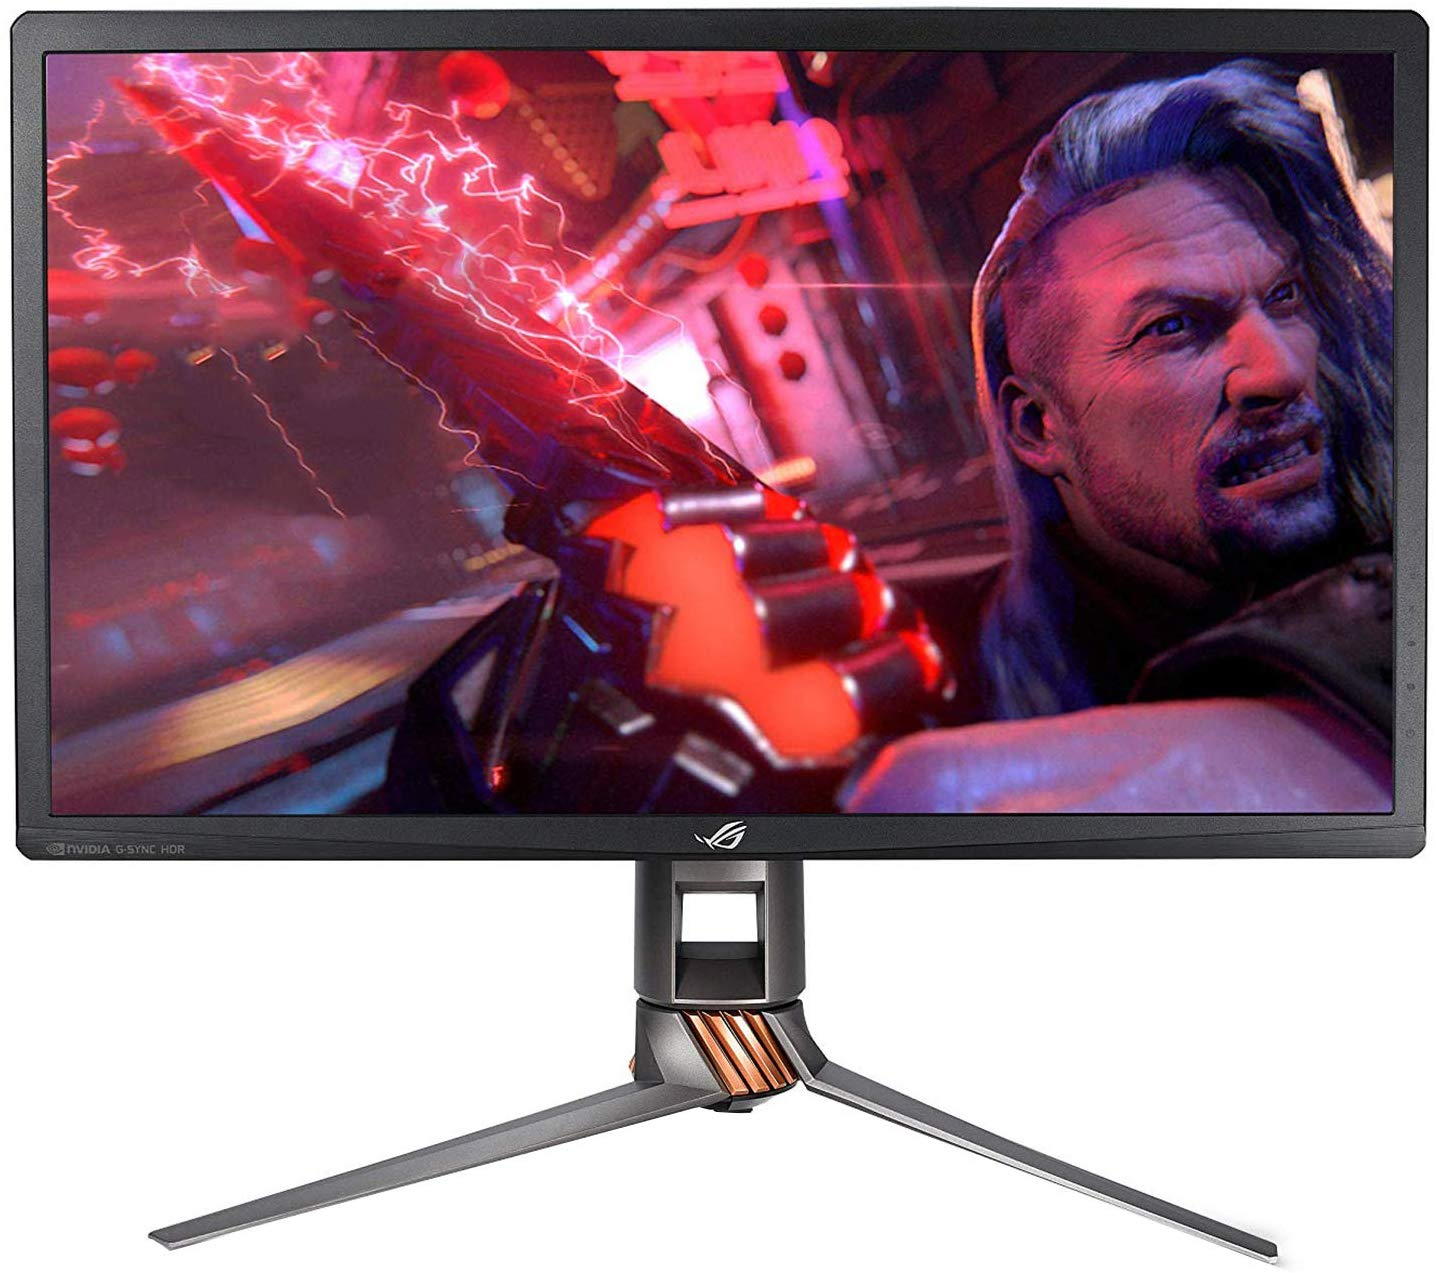 Asus ROG Swift PG27UQ 27-inch 4K UHD and 144Hz Capable Gaming Monitor is Now 13% Cheaper, Get it from Amazon for $1300